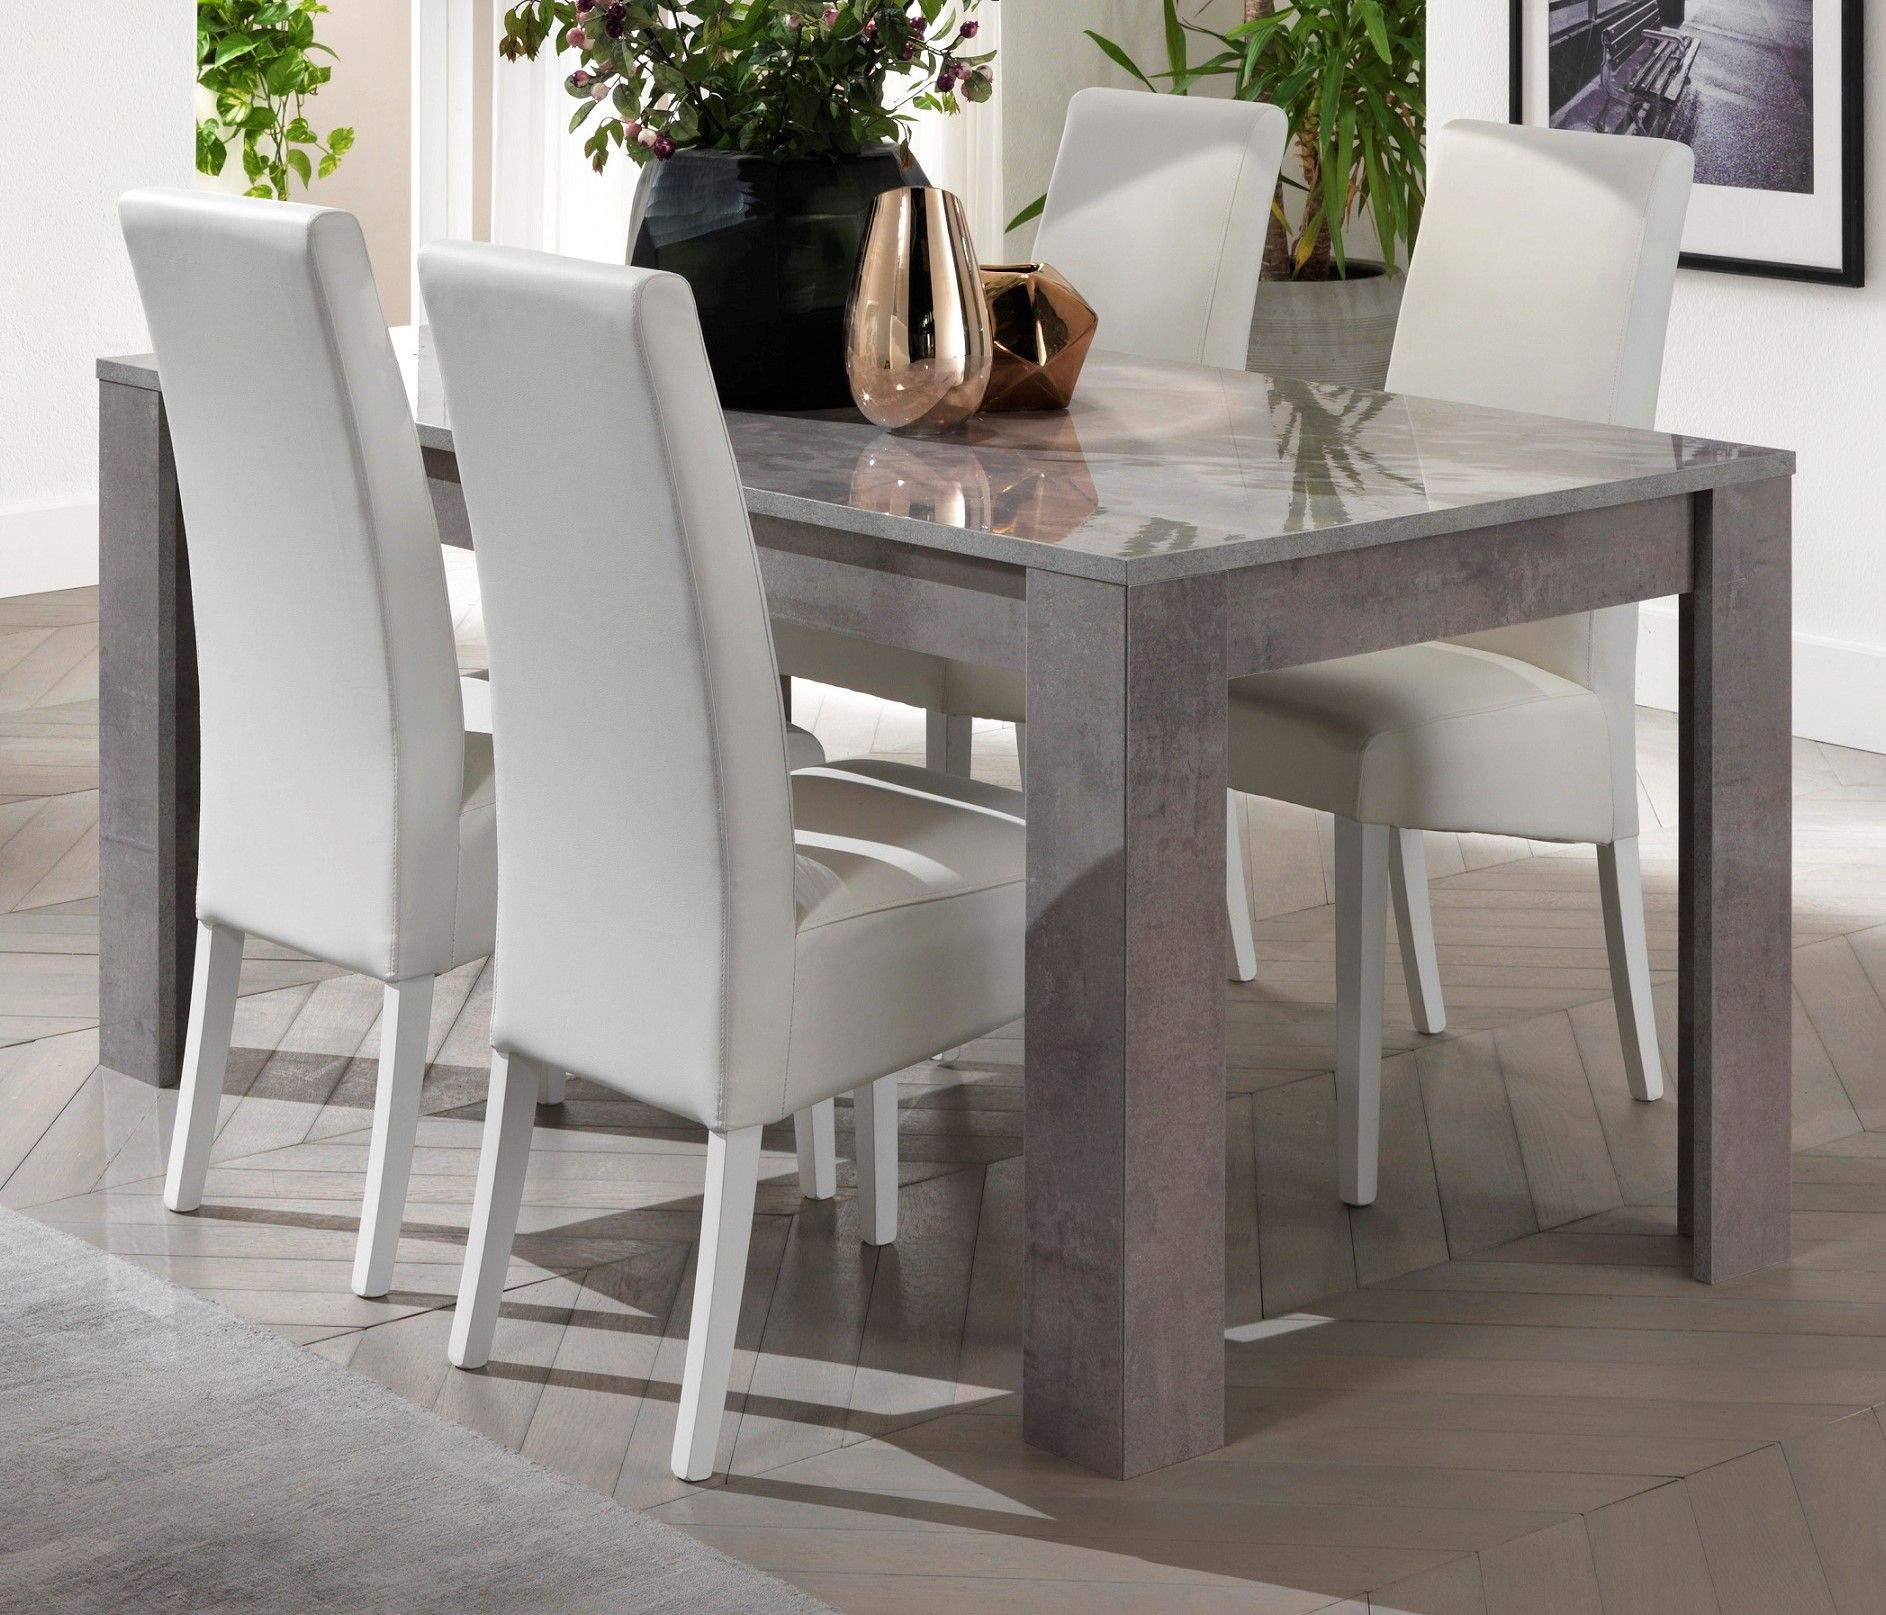 Picture of: Marble Effect Finish Adria Italian Grey Dining Table